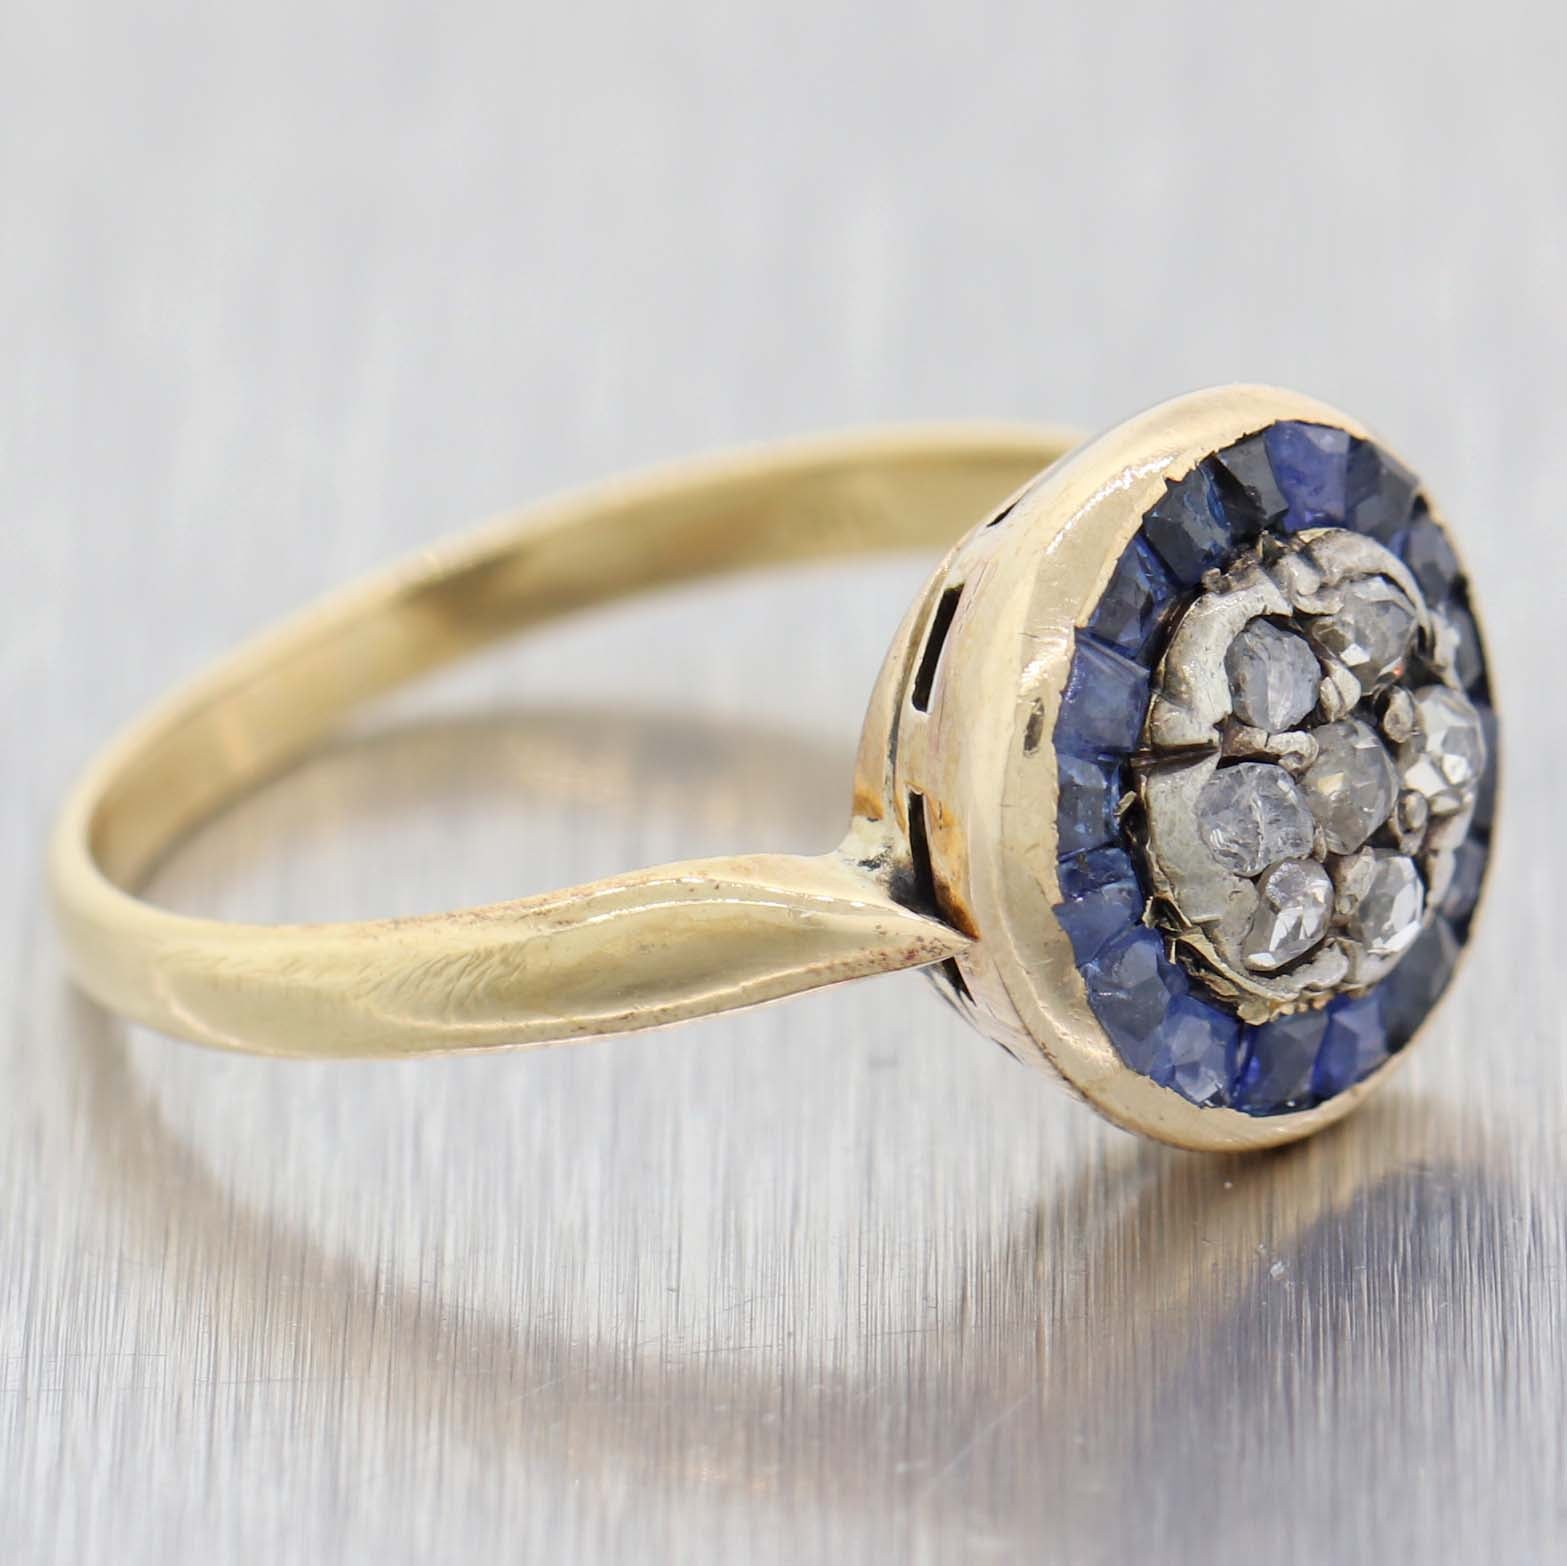 1890s Antique Victorian 18k Yellow Gold Rose Cut Diamond Sapphire Cluster Ring